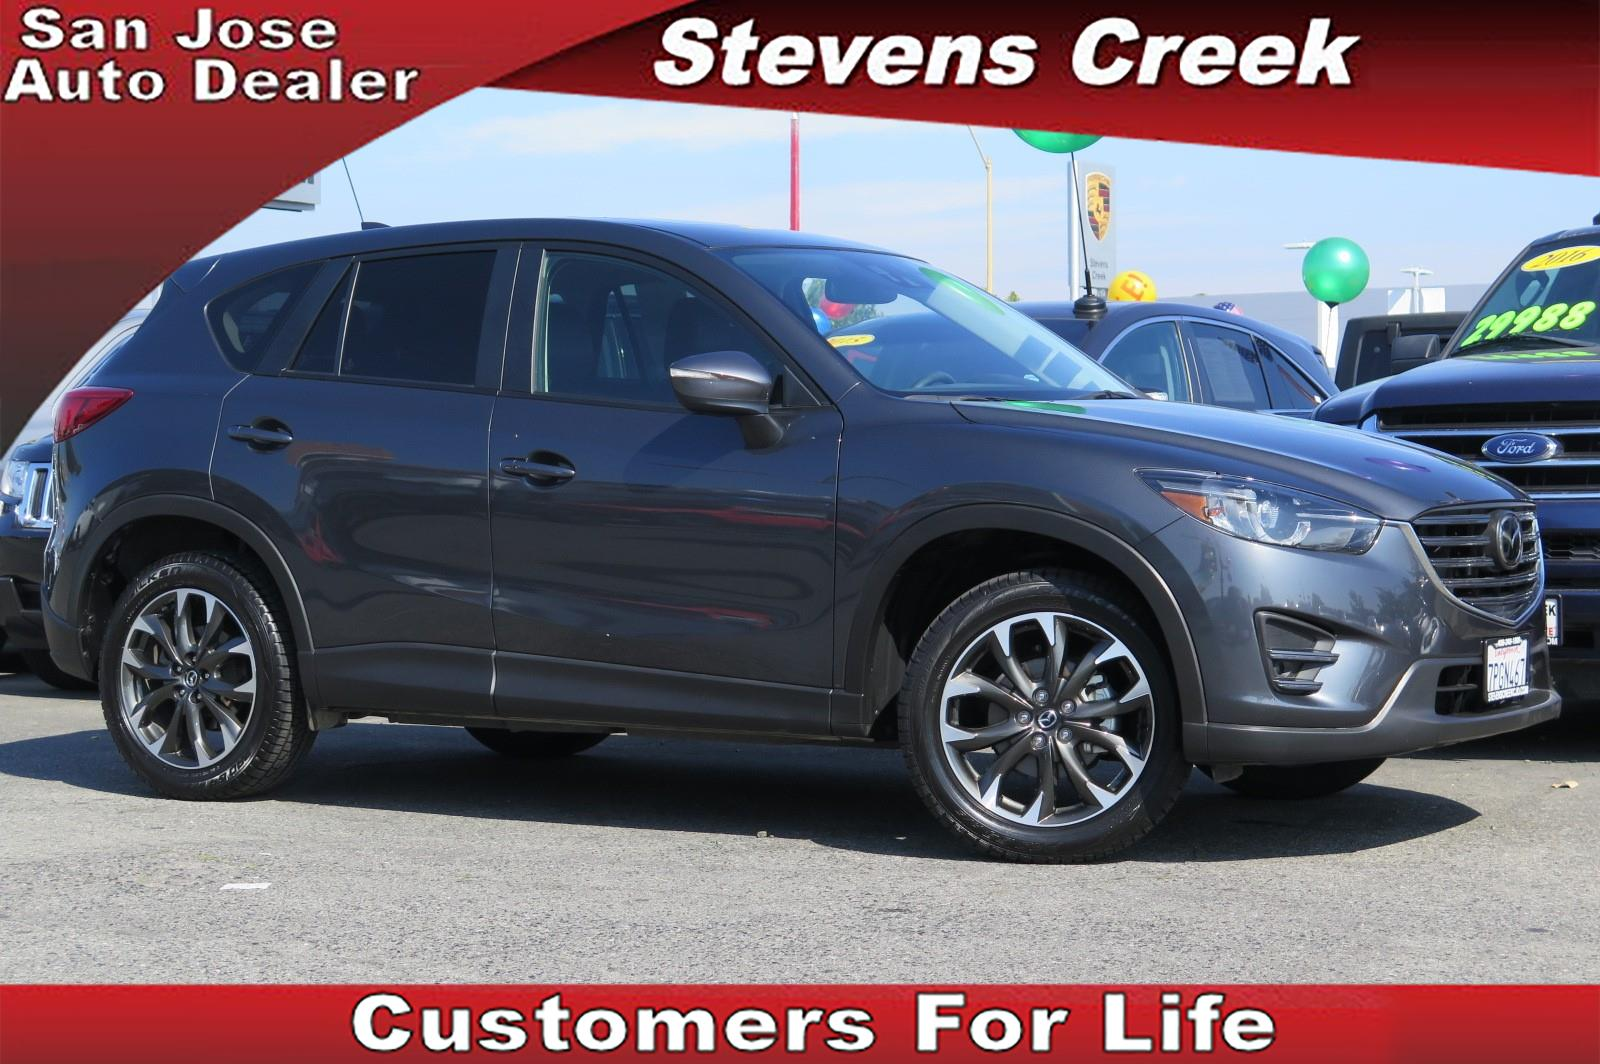 Stevens Creek Chrysler Jeep Dodge 2016 Mazda CX 5 Grand Touring Sport  Utility